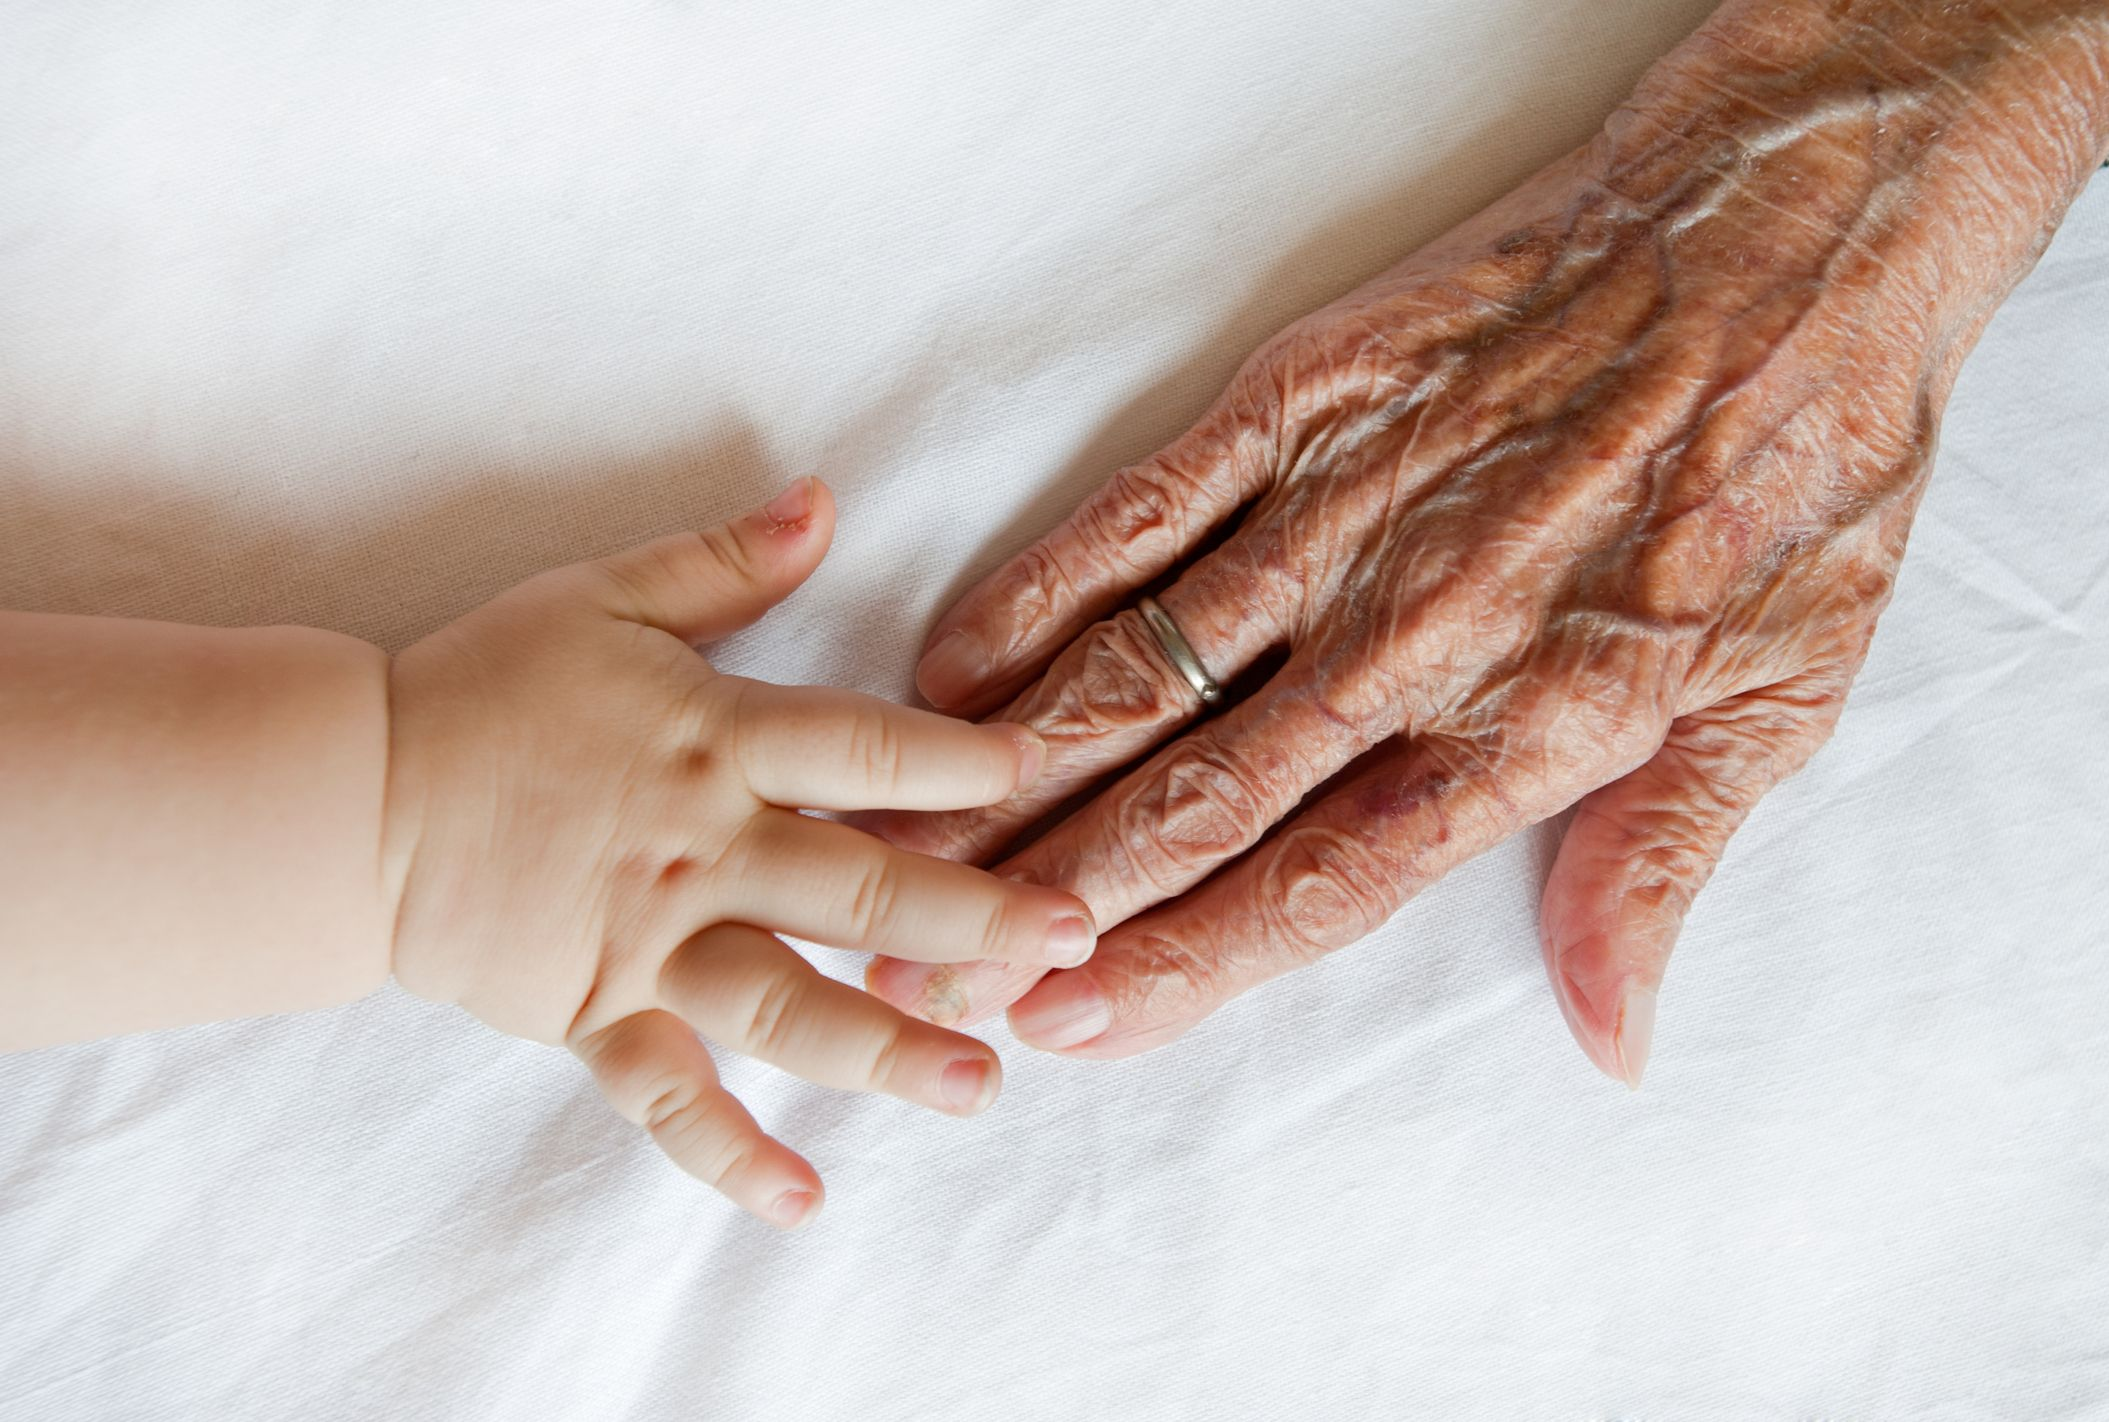 old-young-baby-elderly-stock